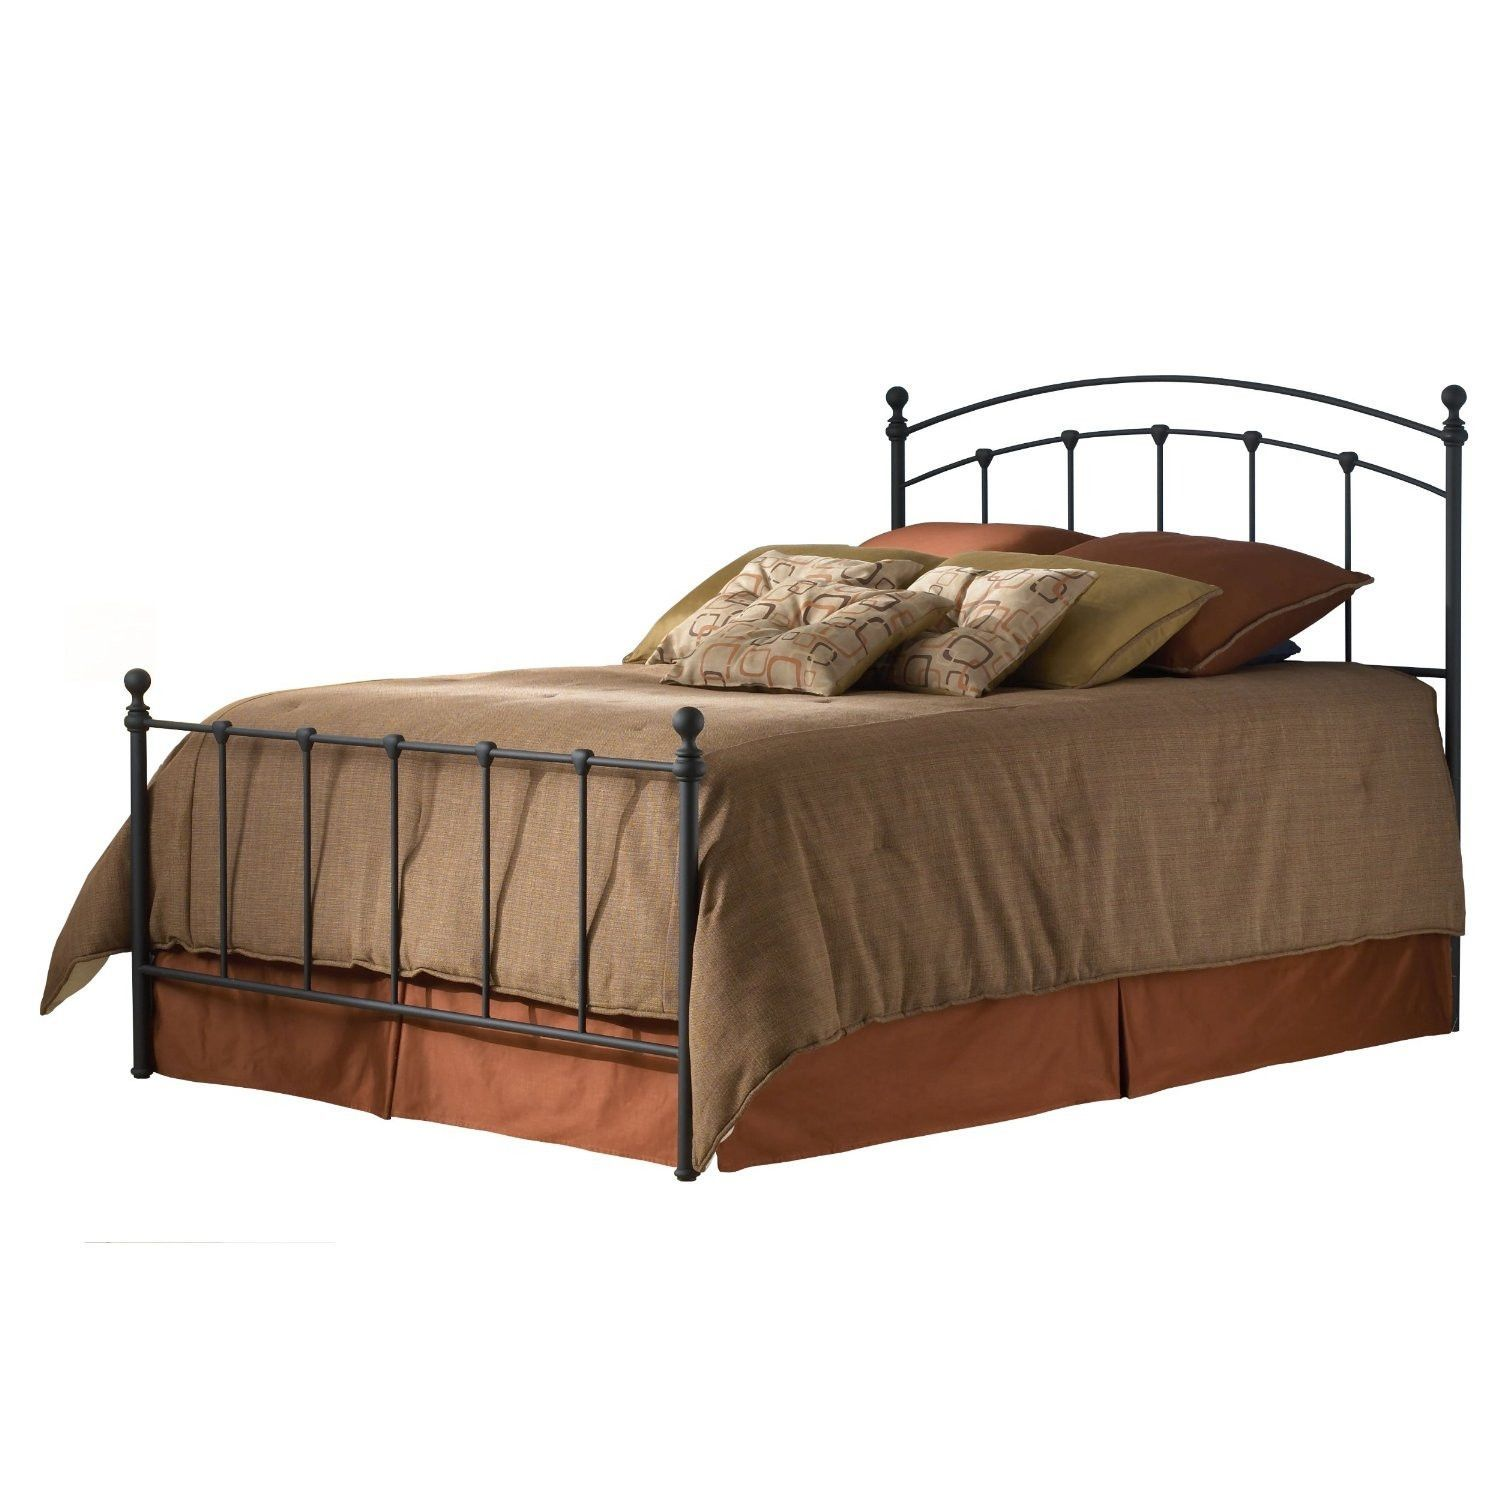 twin size metal bed frame with headboard and footboard in matte